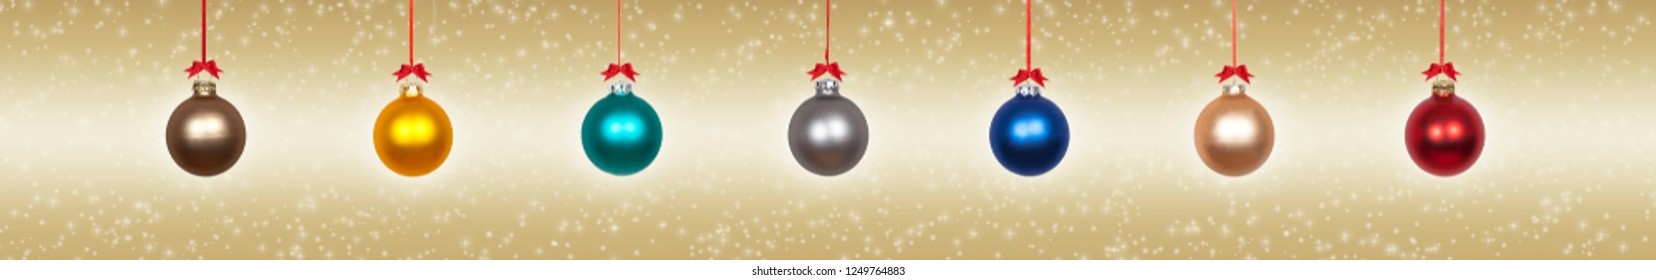 Hanging christmas balls on a golden background